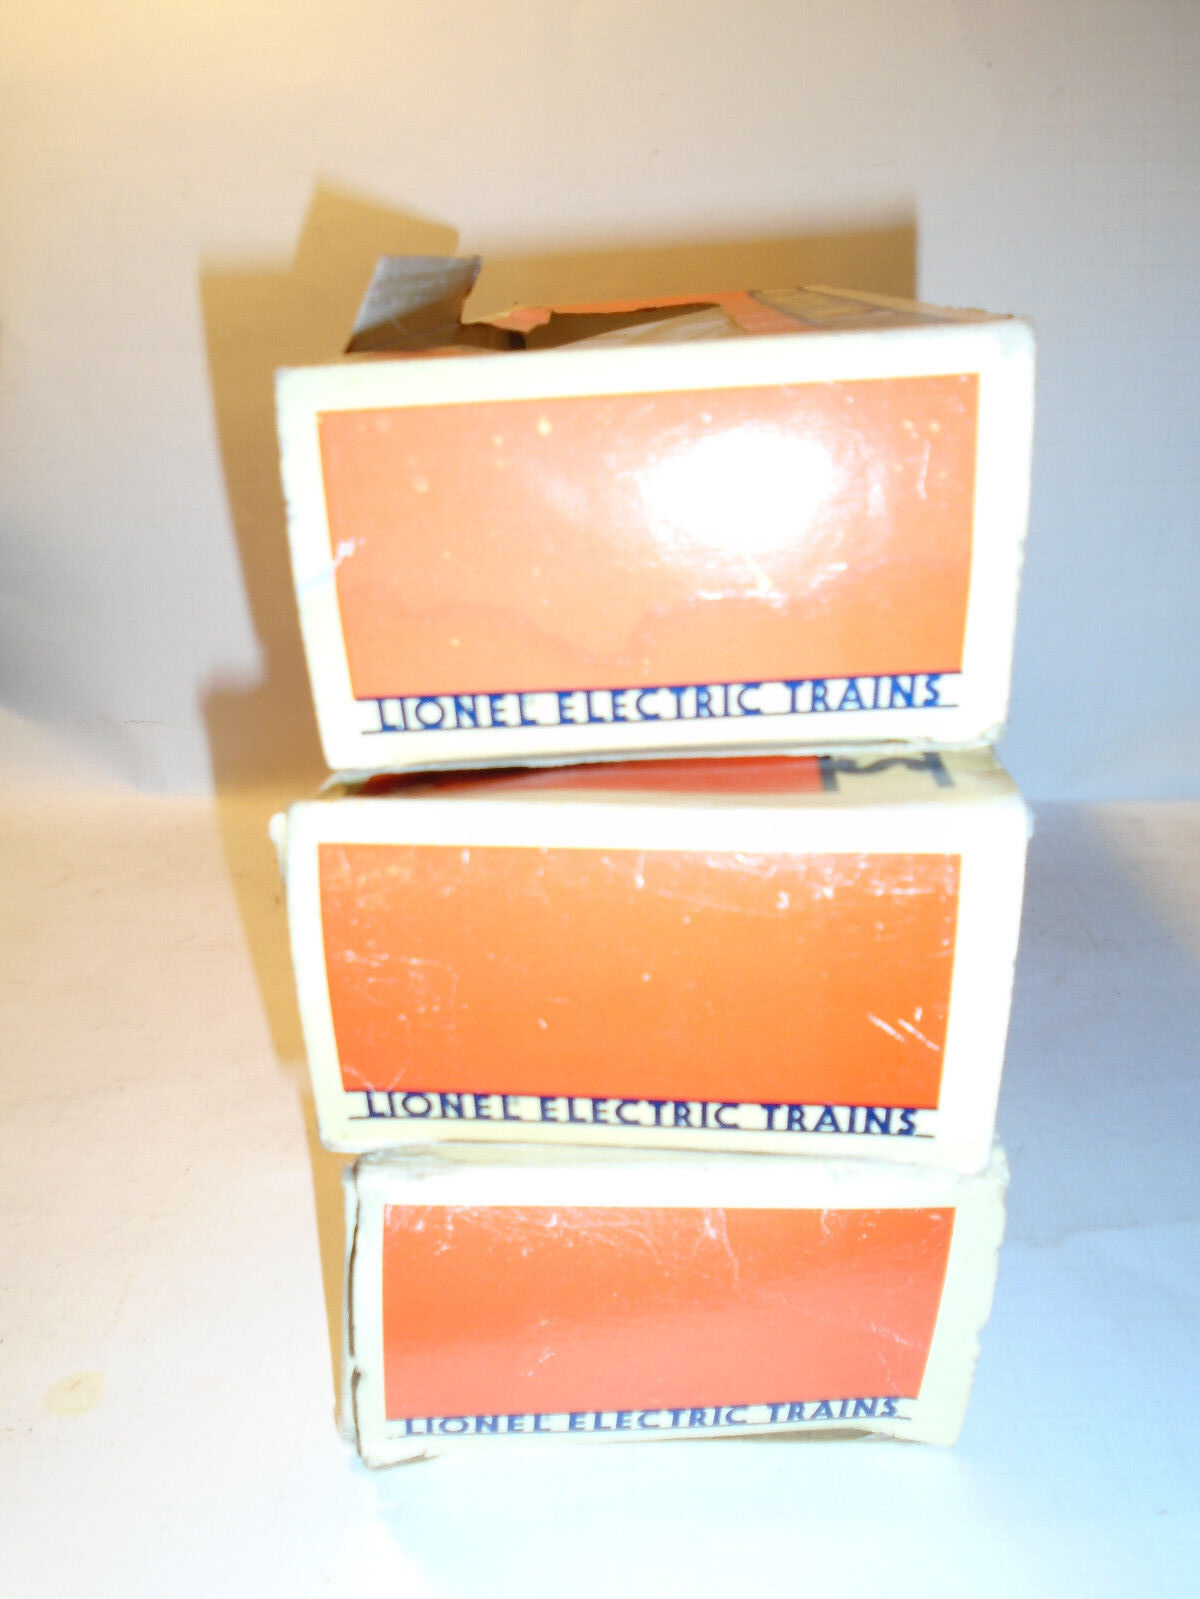 SET OF 3 3 3 LIONEL VISITORS CENTER scatola autoS FROM 1992,3,5  'S 19920, 19927, 19934 1edc38